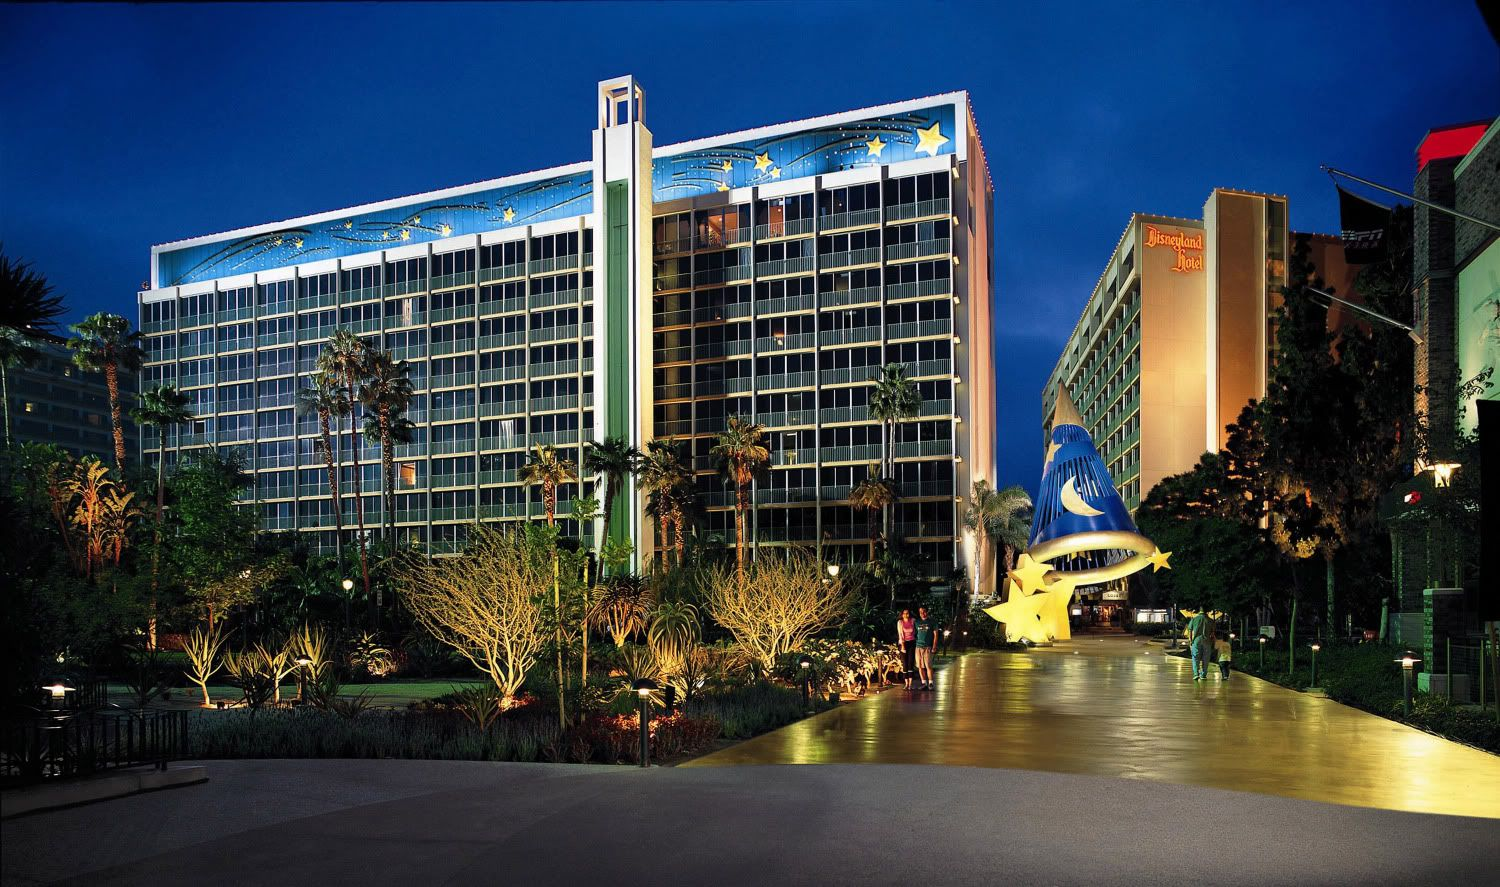 The Pool Area And Tower Circulation Areas Were Redesigned Into A Themed Resort